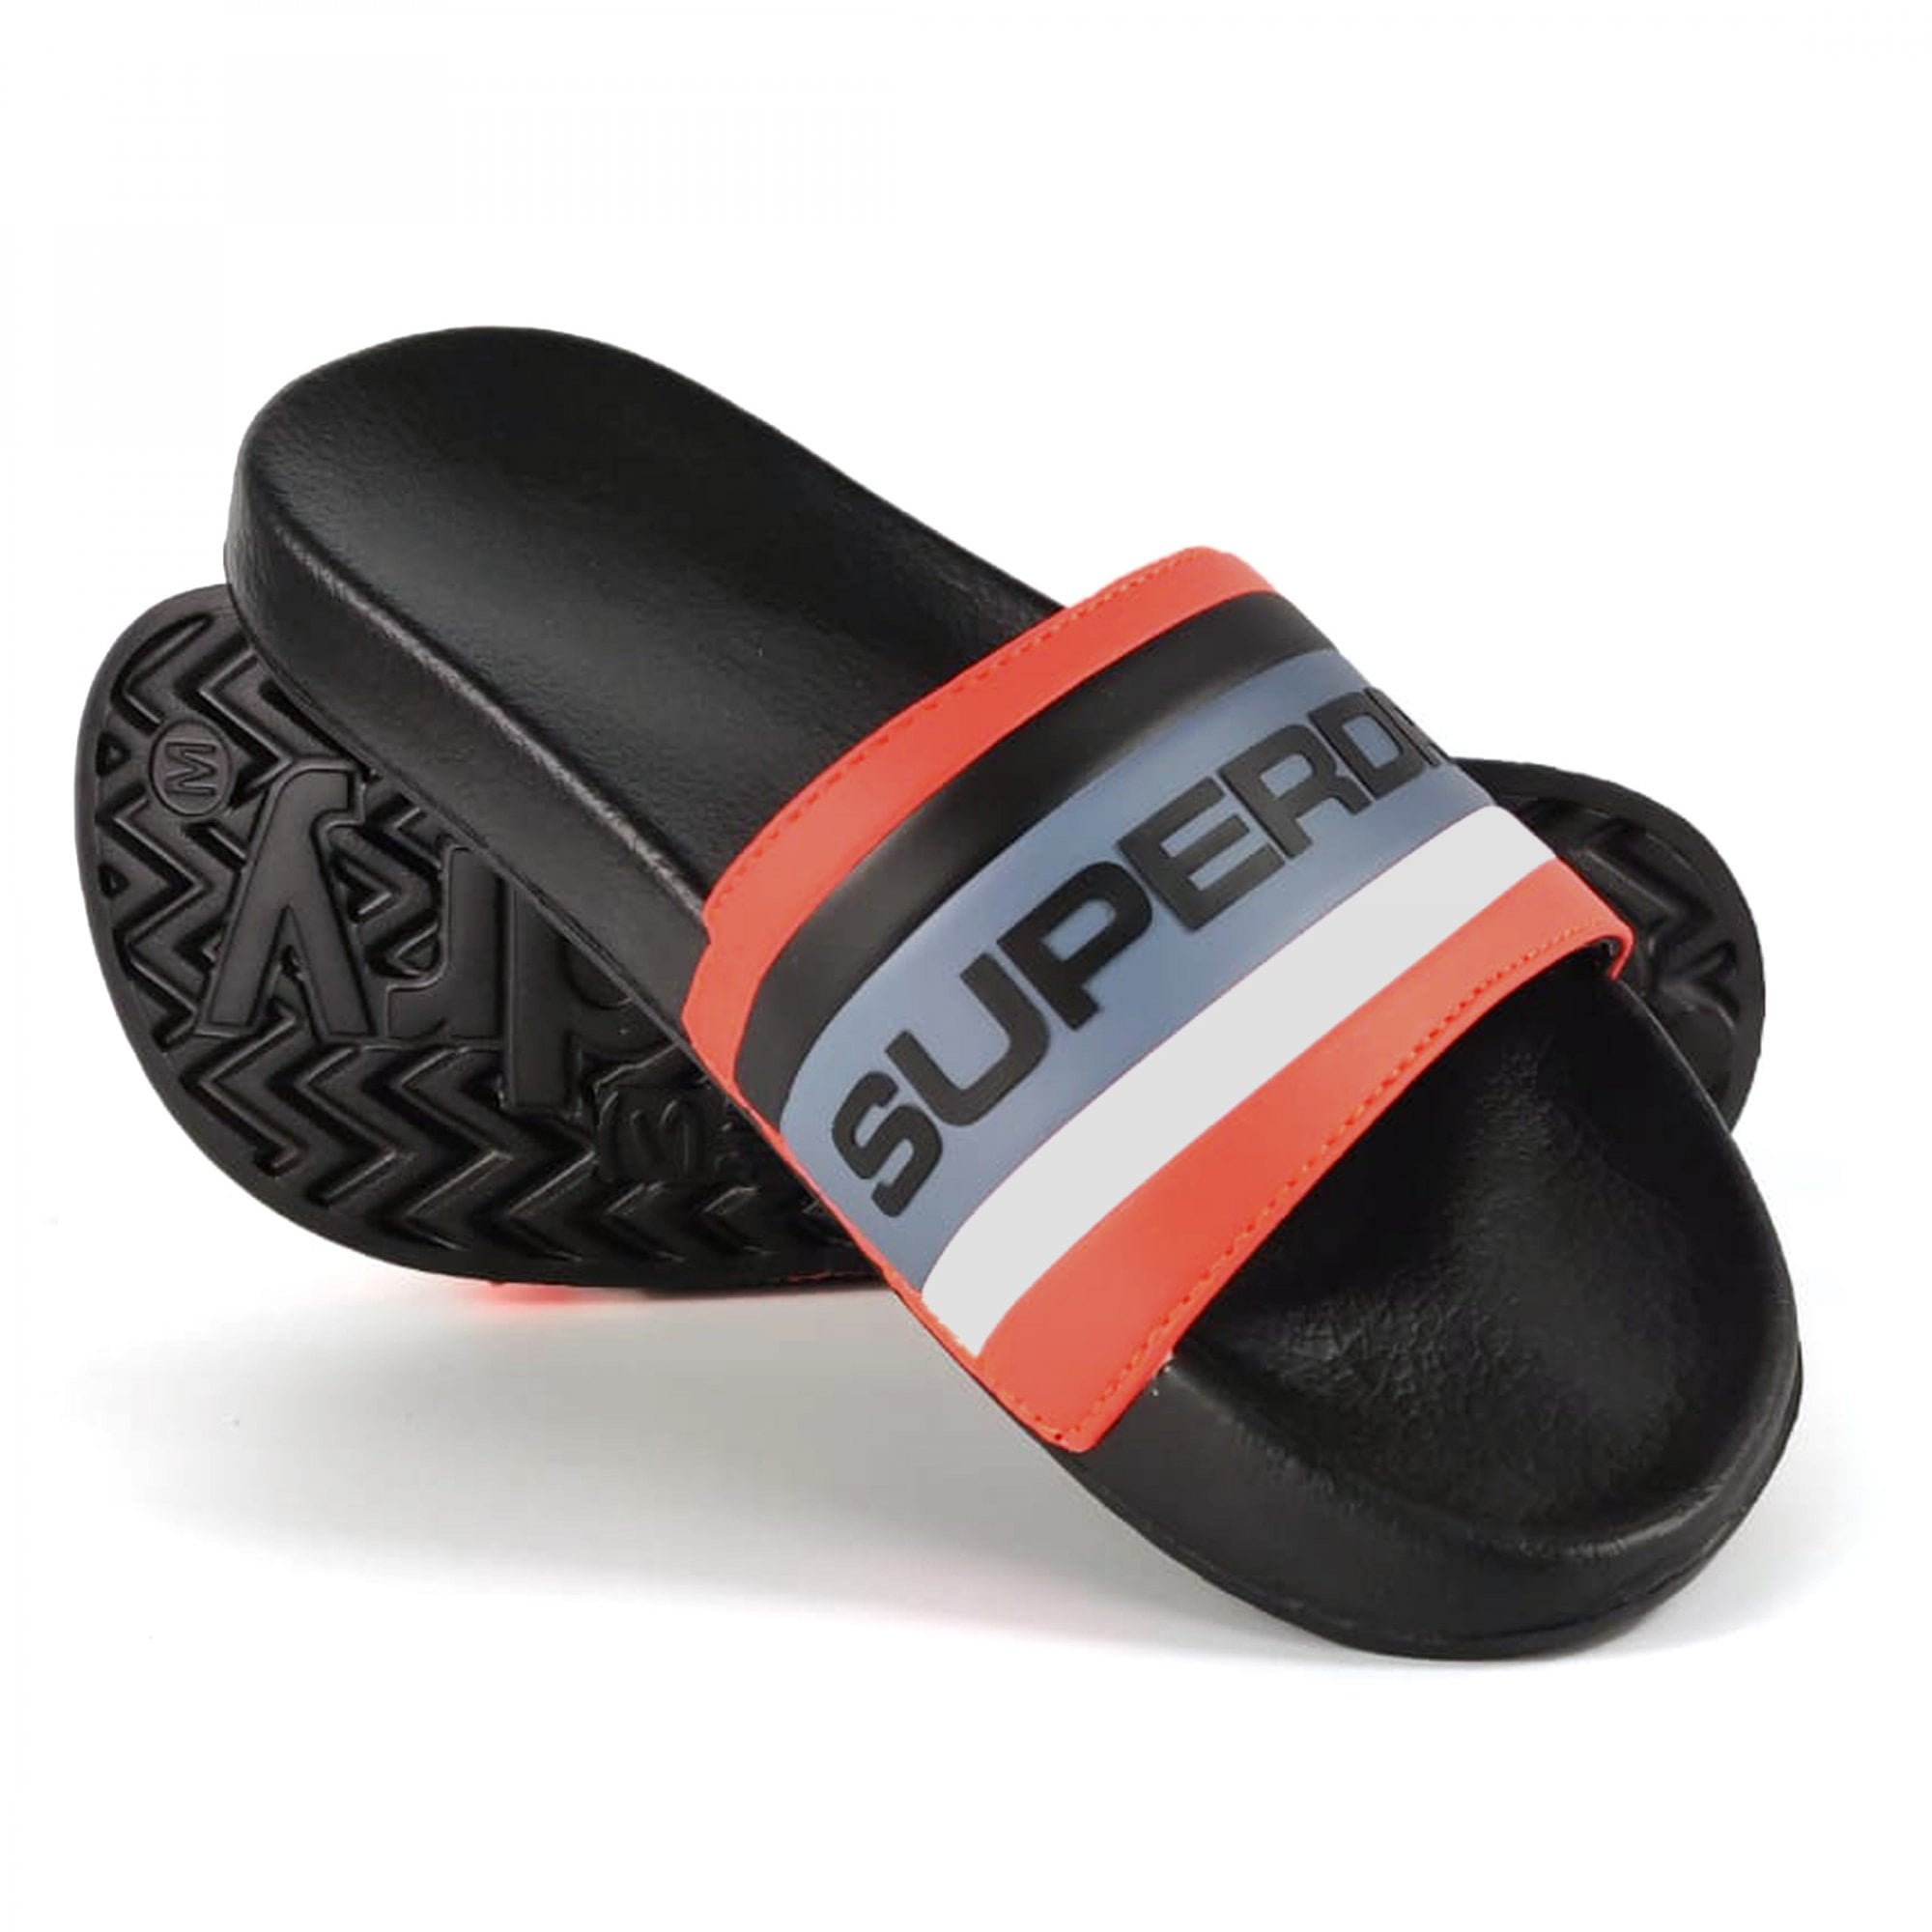 Superdry Retro Colour Block Sliders Khaki Black//Hazard Orange V4B